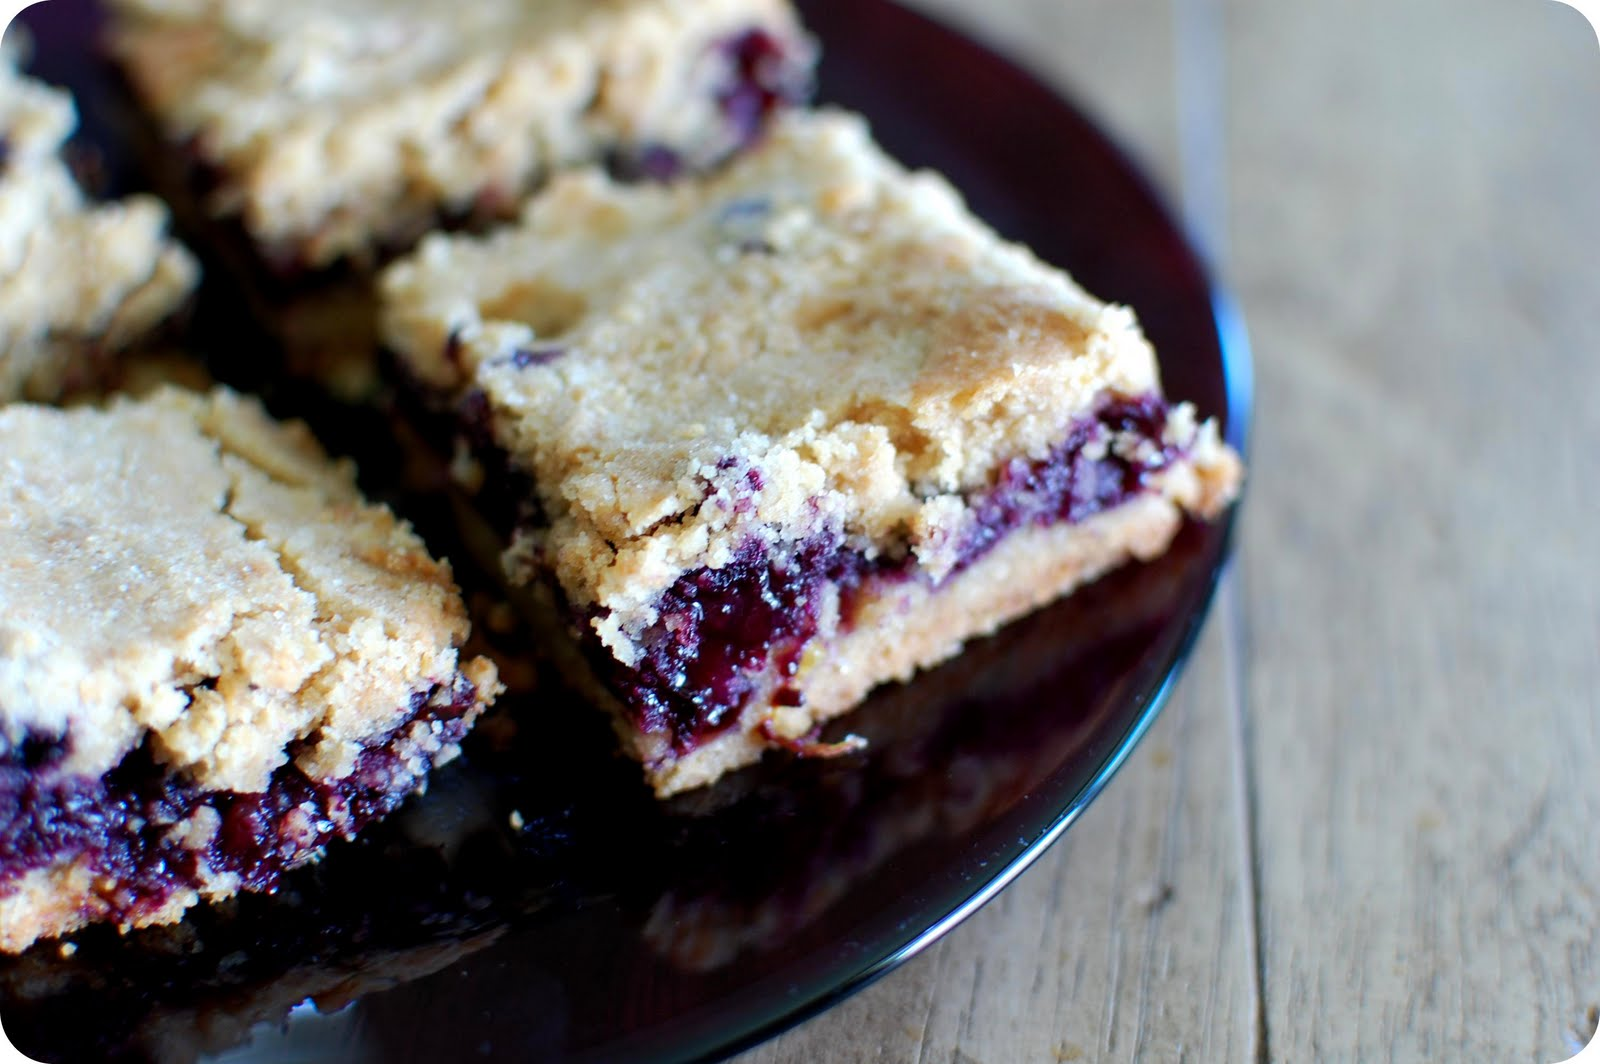 33 Shades of Green: Tasty Tuesdays: Blueberry Crumb Bars